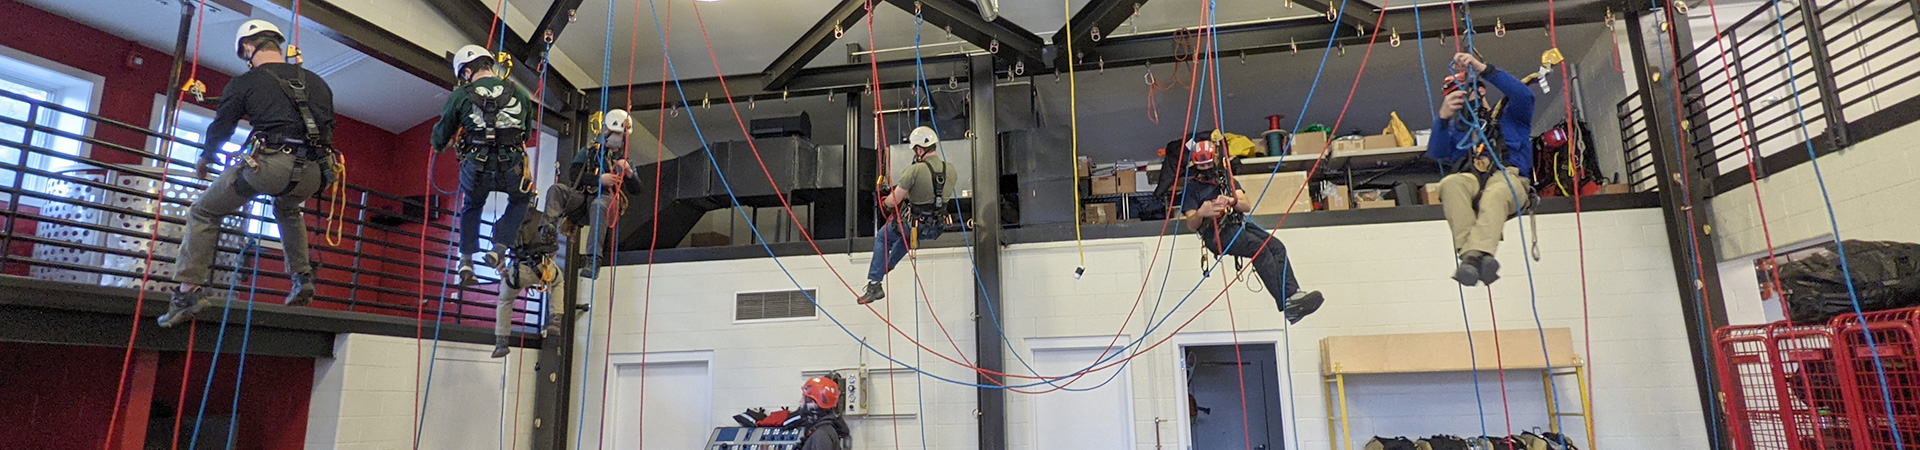 Master Point Rope Access Training Facility at Rocky Mountain Fire Station Colorado